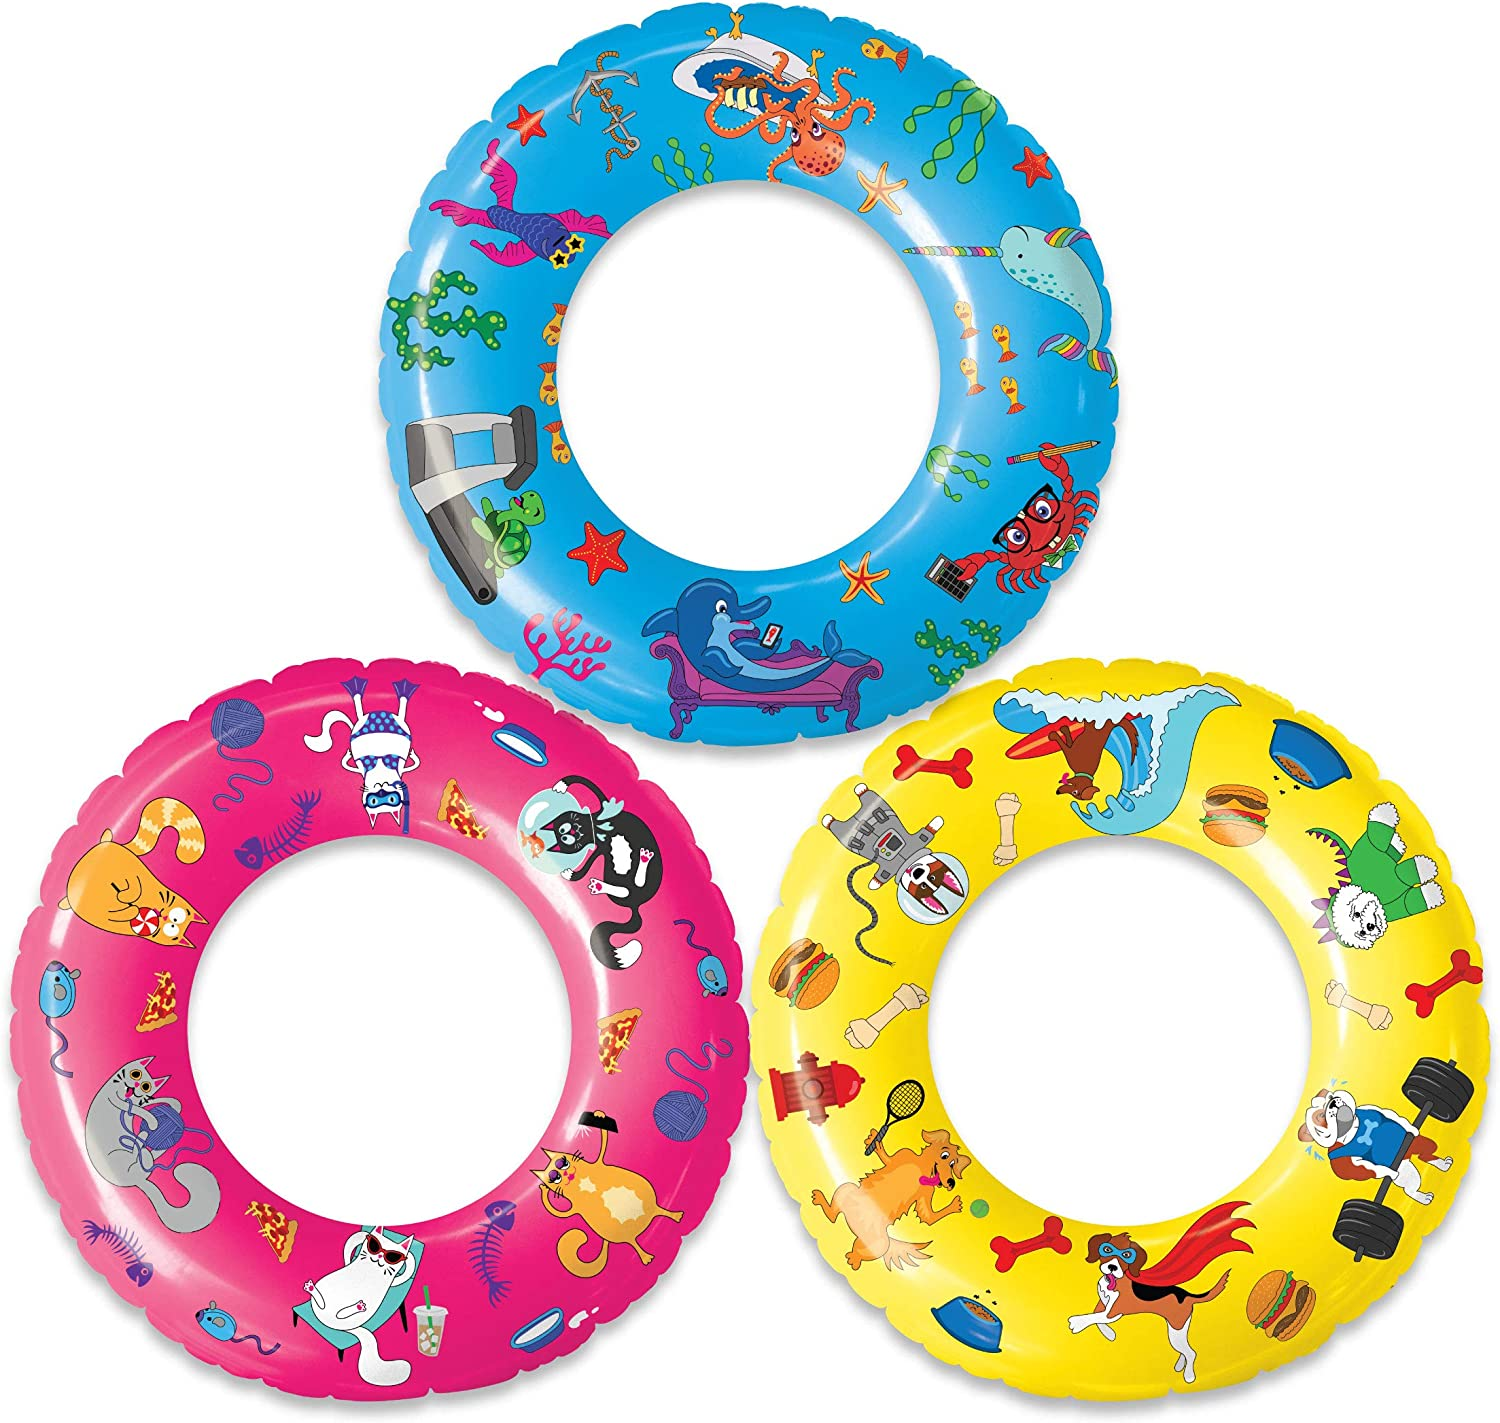 USA Toyz Inflatable Pool Floats Import for Kids R - Max 69% OFF 3 Inch Pack 23